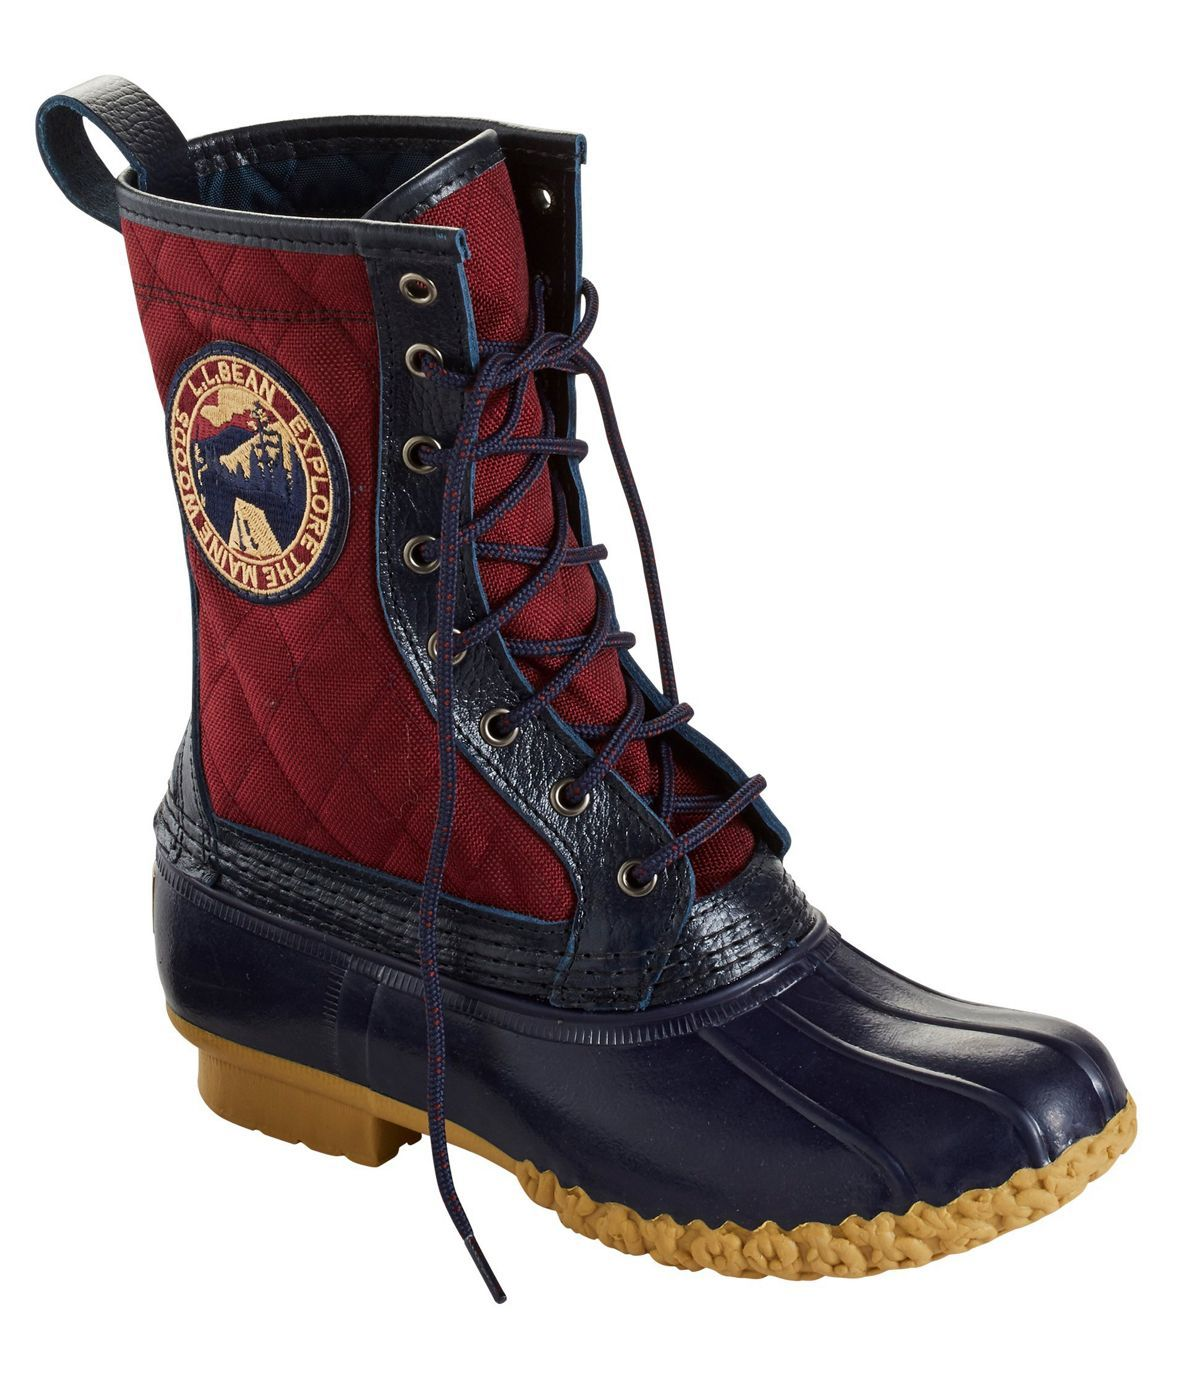 new high quality meet classic style L.L.Bean Women's Quilted Bean Boots